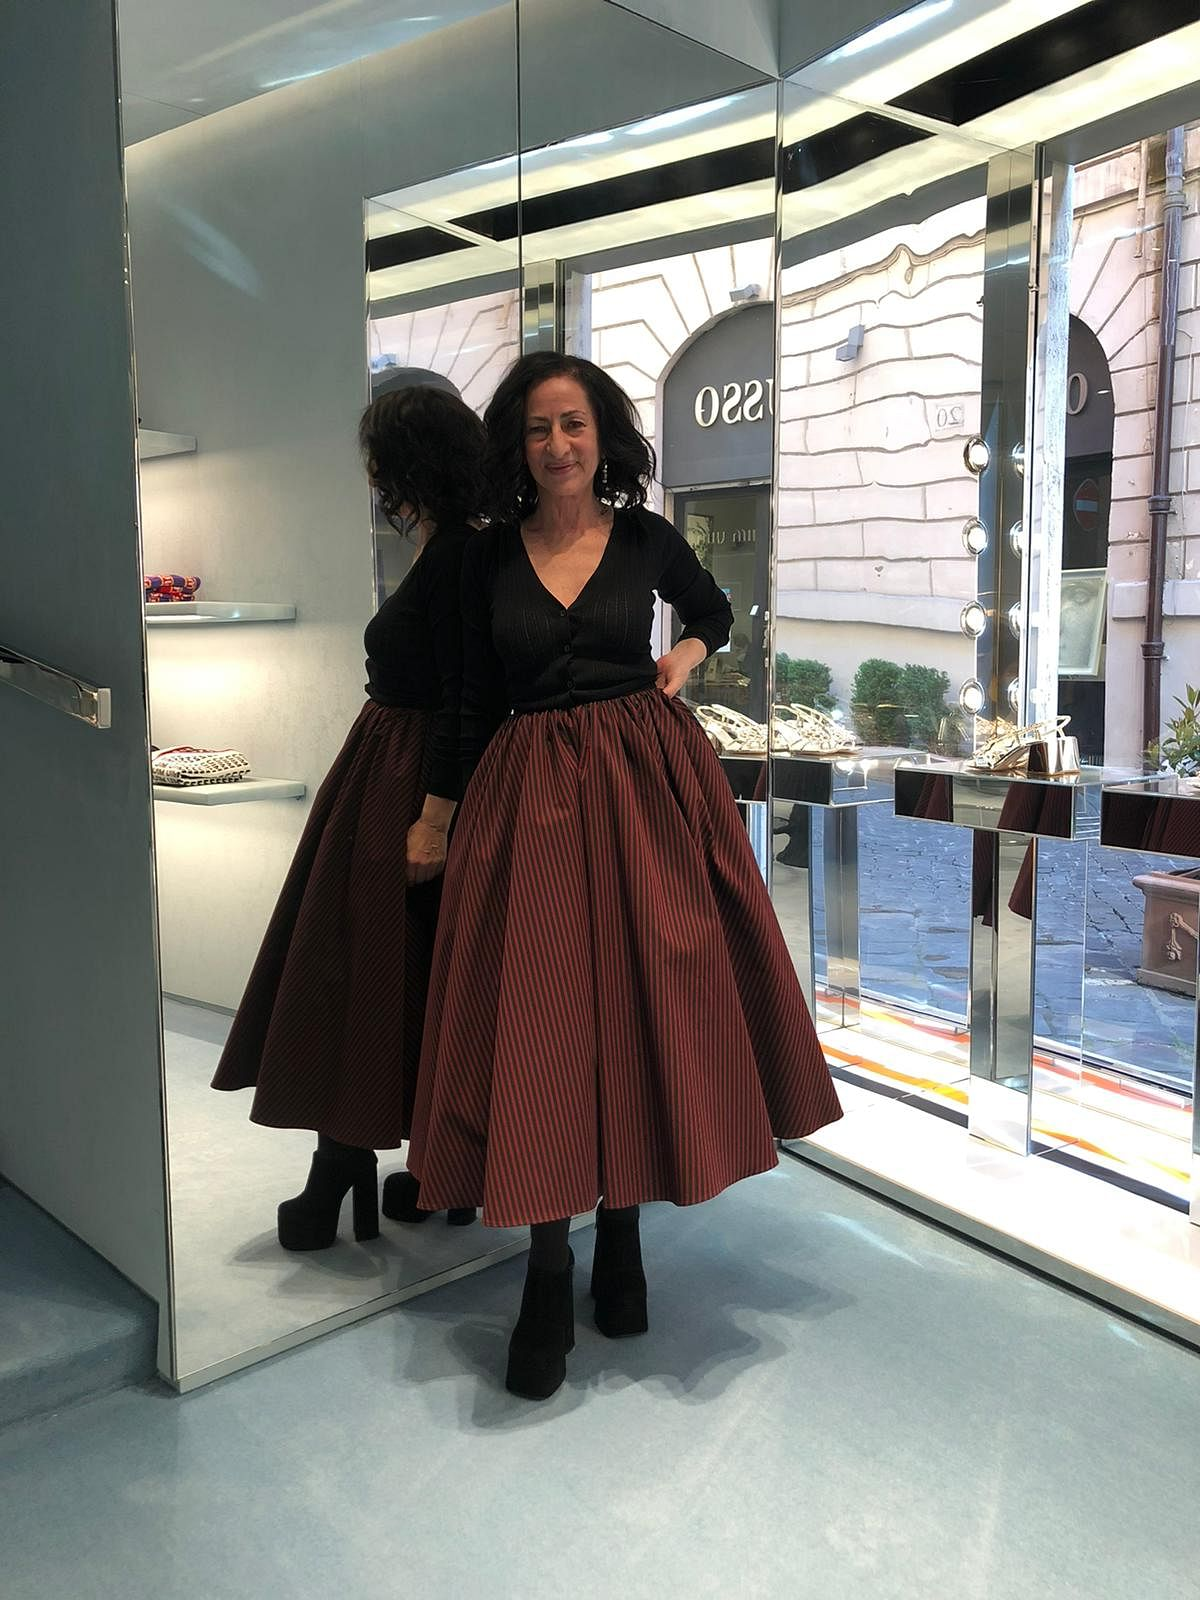 The author of the piece, journalist Francesca Marino, in her Miu Miu skirt at the designer store in Rome. May 2021